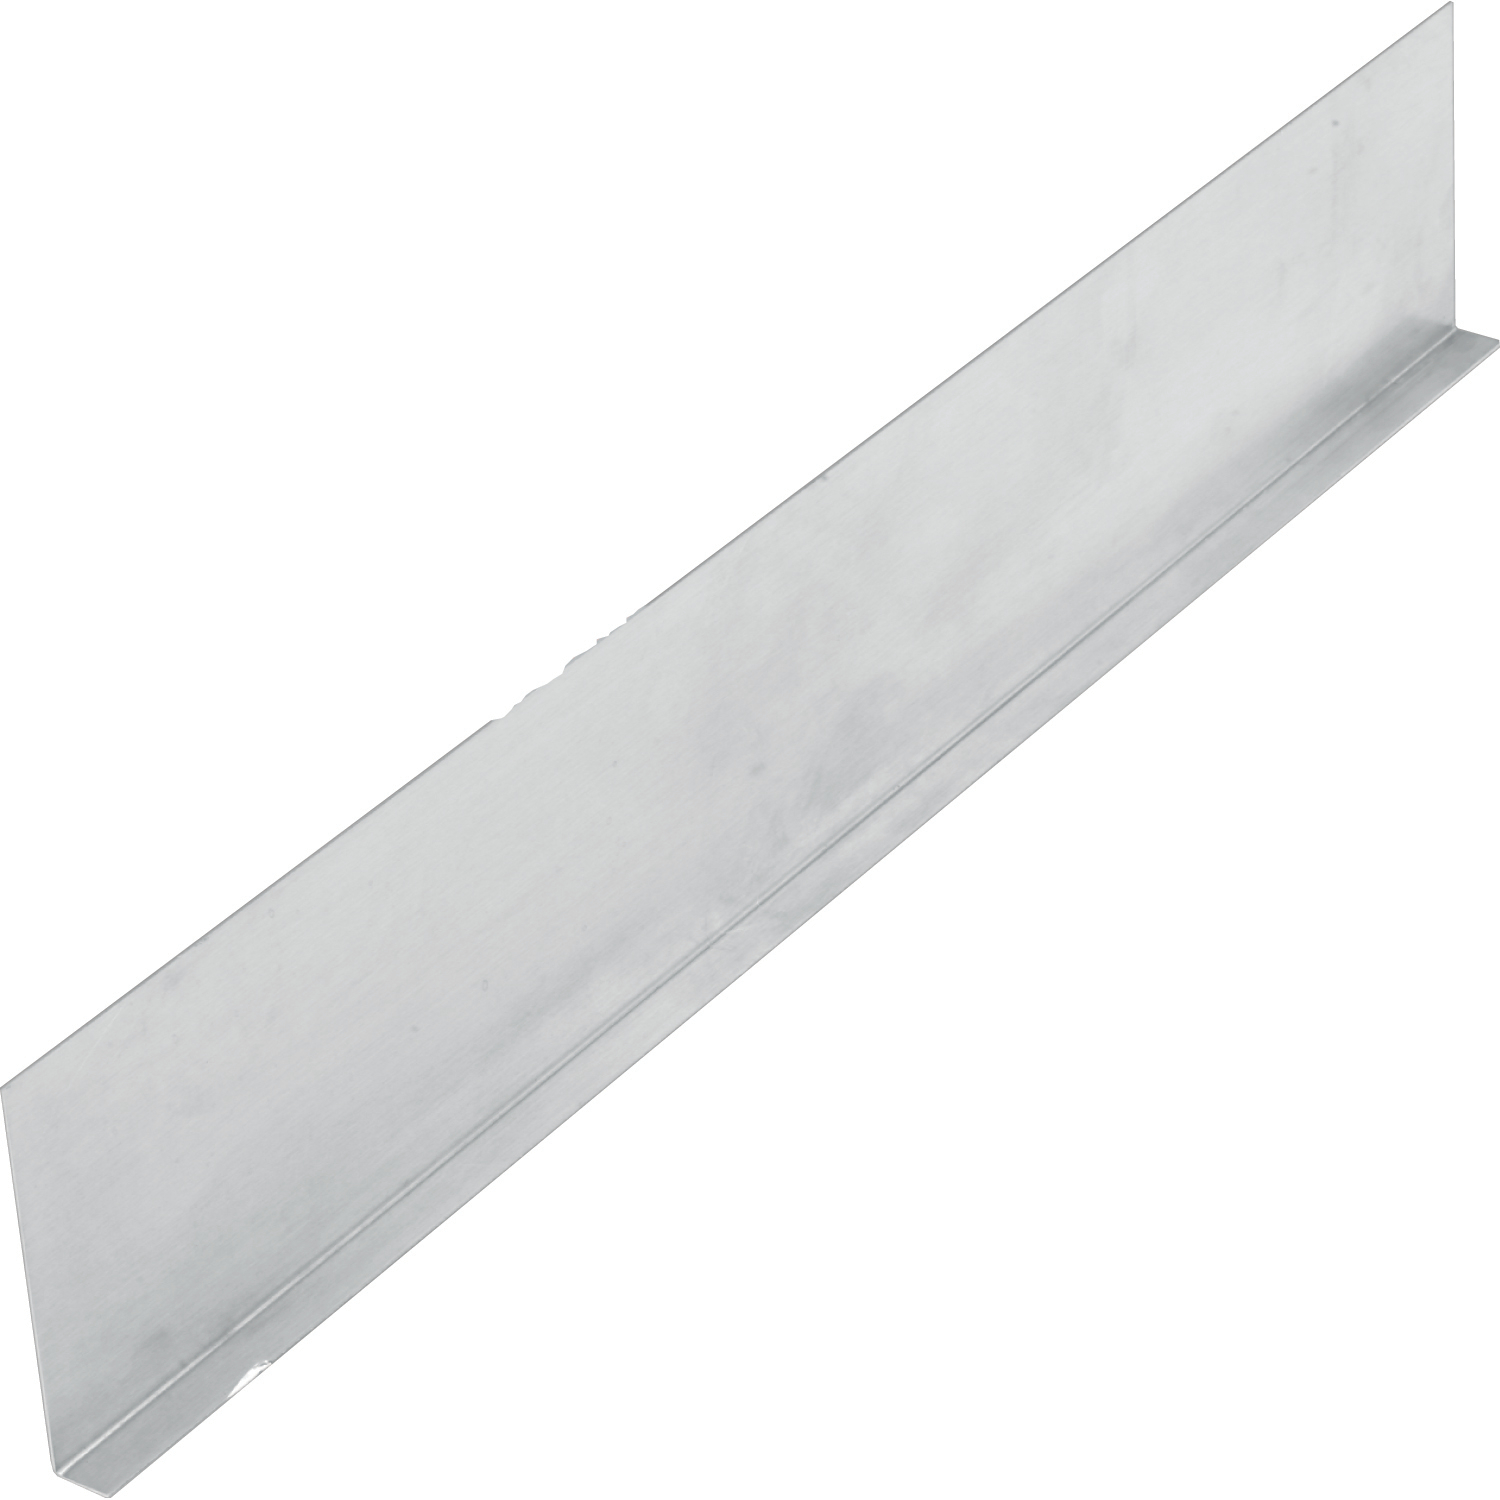 SS BARRIER 5IN D TRAY 12FT